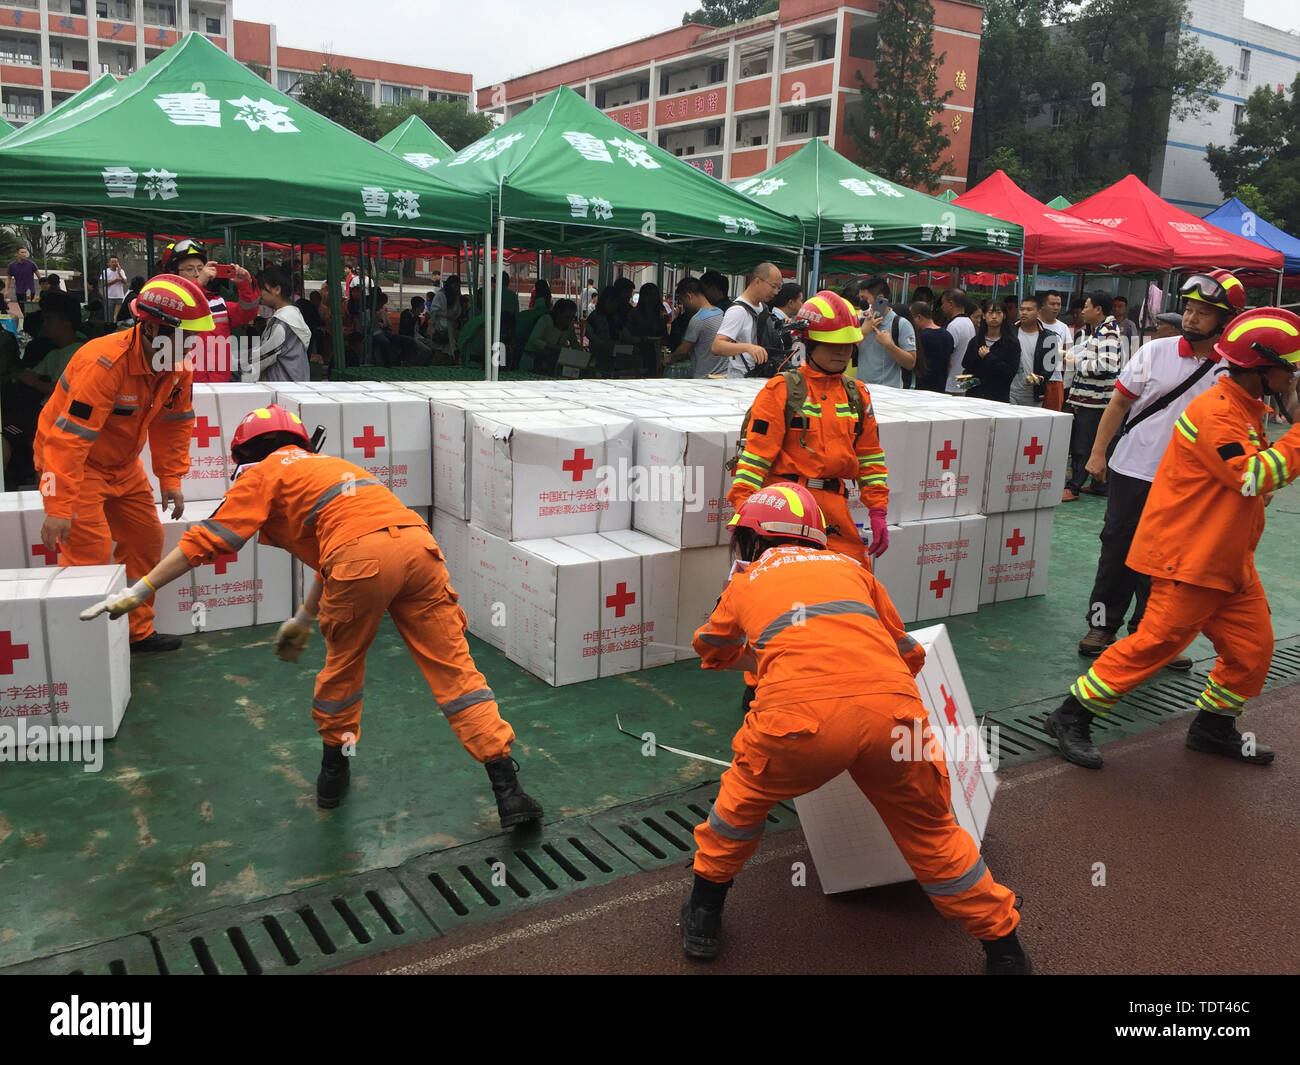 Changning. 18th June, 2019. Rescue workers handle relief materials at a temporary shelter at Shuanghe Town High School in Changning County of Yibin City, southwest China's Sichuan Province, June 18, 2019. Thirteen people died and 199 were injured after a 6.0-magnitude earthquake hit southwest China's Sichuan Province at 10:55 p.m. Monday, the Ministry of Emergency Management said Tuesday. Credit: Xinhua/Alamy Live News - Stock Image